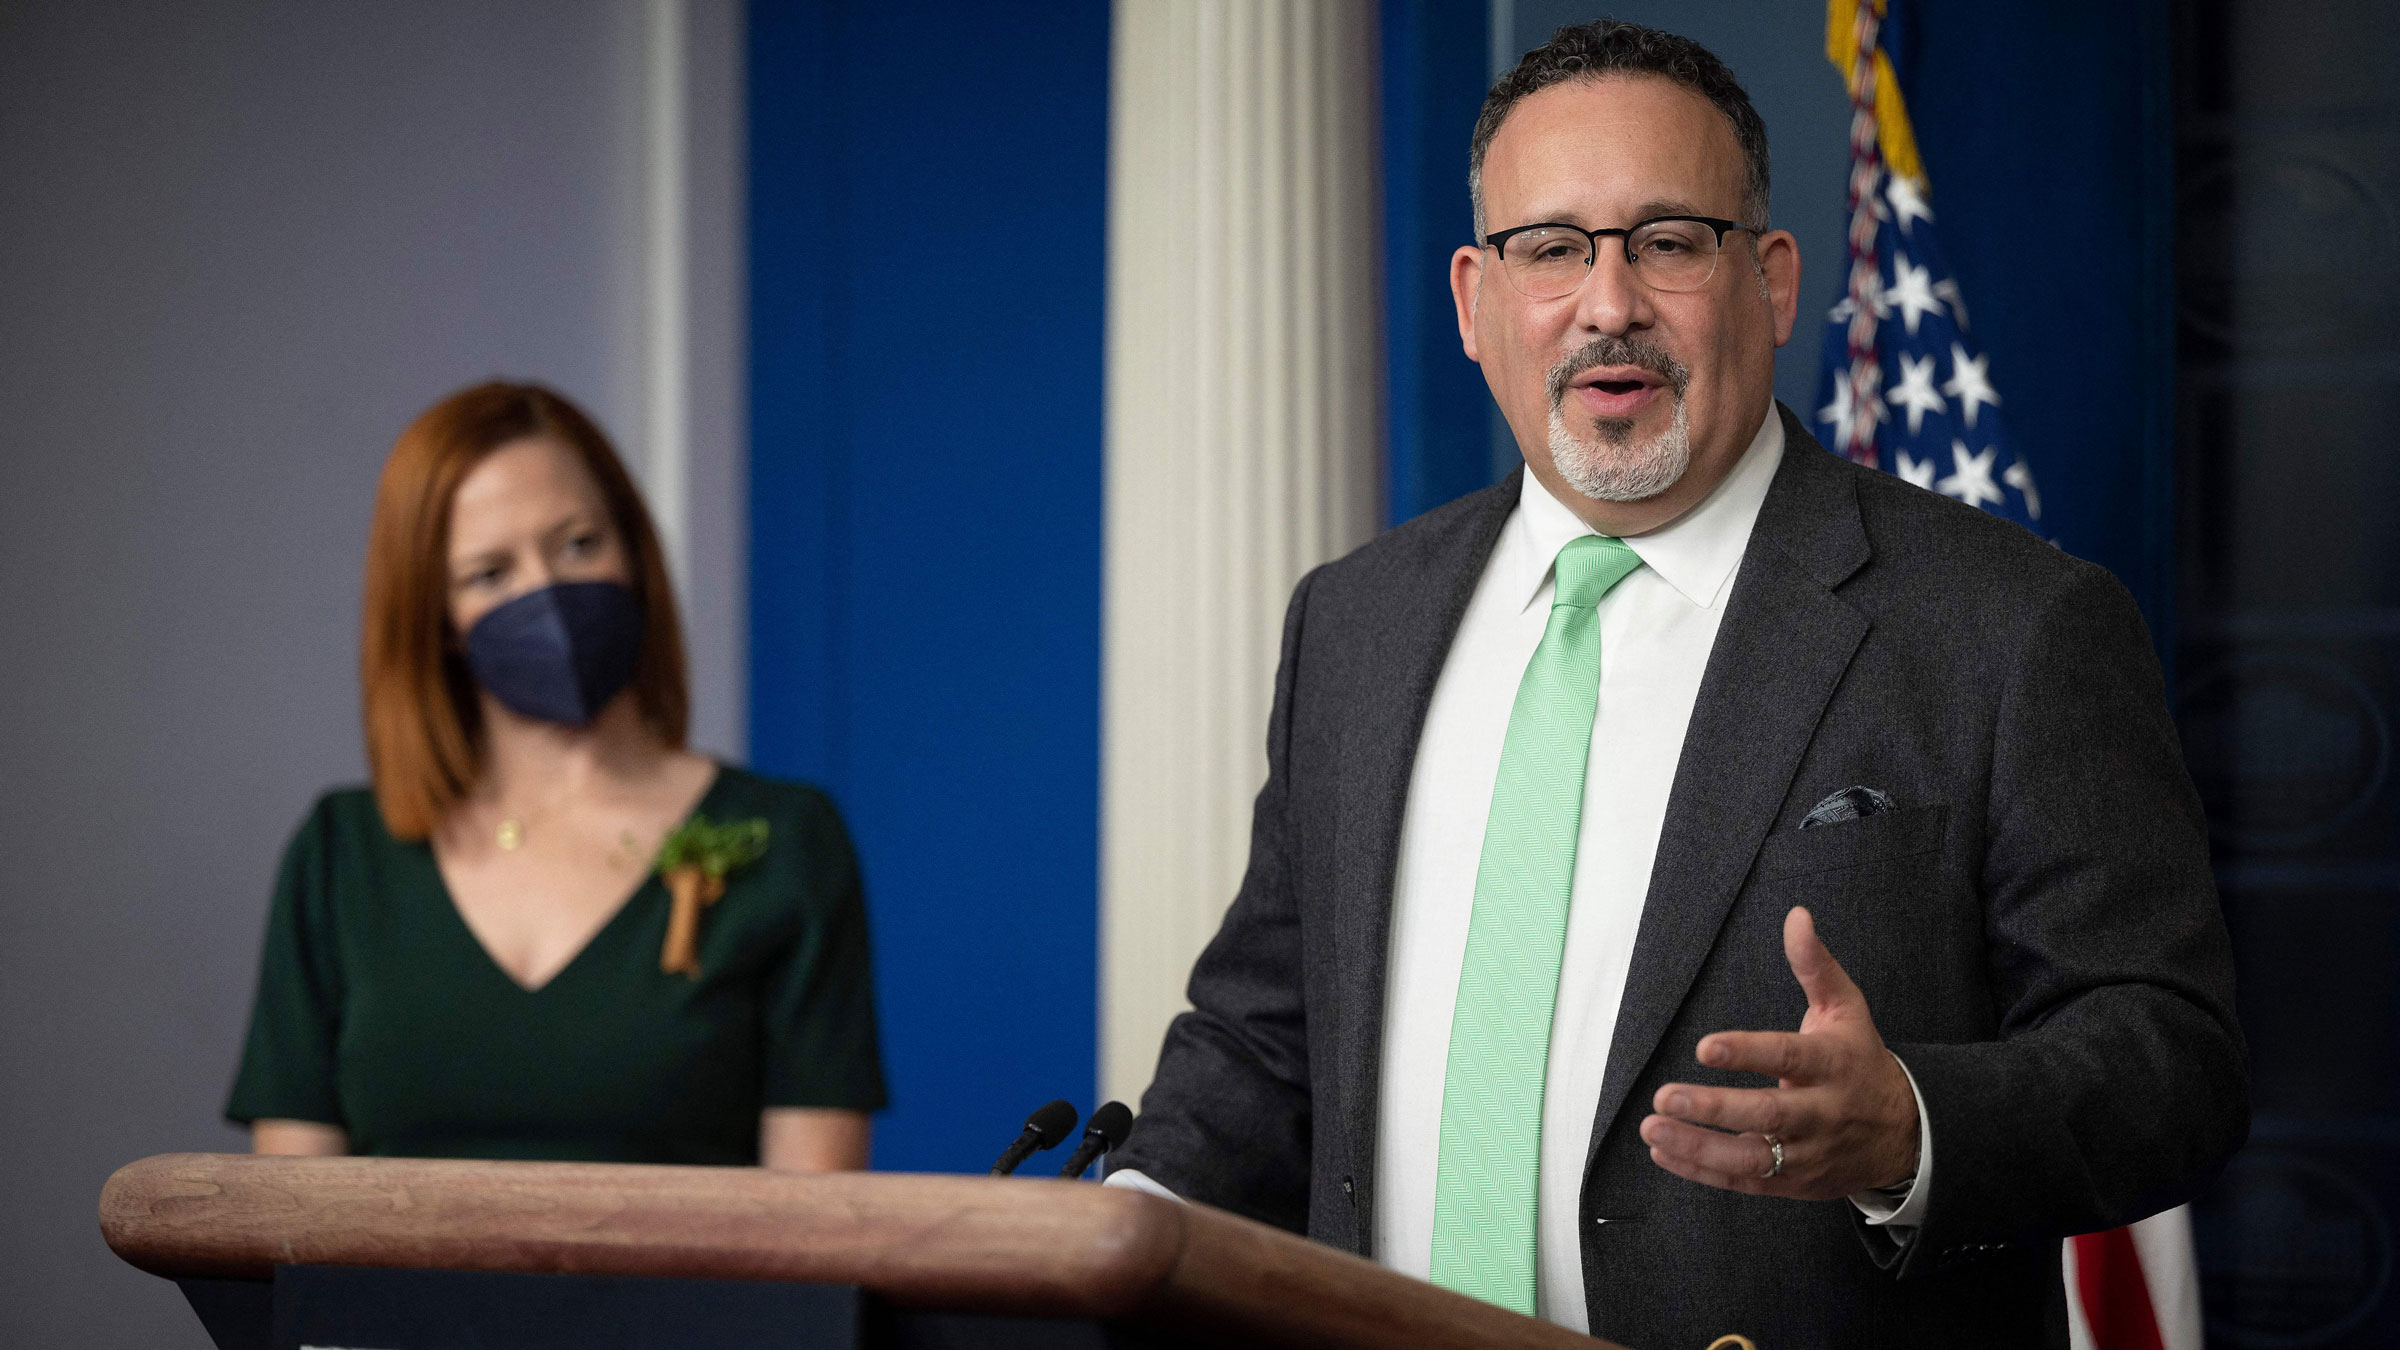 Education Secretary Miguel Cardona, flanked by White House press secretary Jen Psaki, speaks during the daily press briefing at the White House on Wednesday.